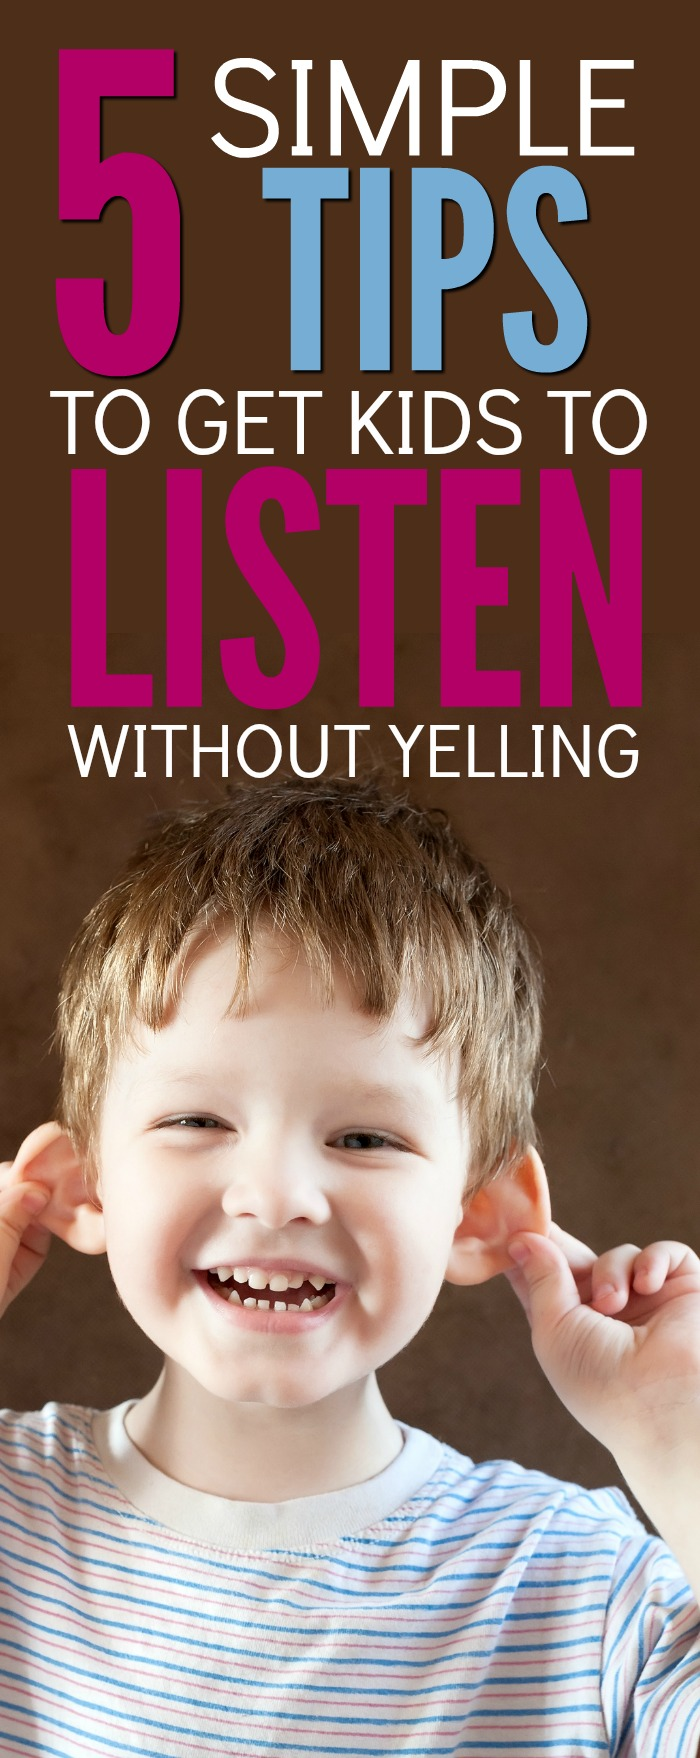 Rage. Here's how to get kids to listen the first time without yelling. Perfect tip for peaceful families. Feel better about your parenting when you have these tips to use next time you feel pushed past your point of sanity.